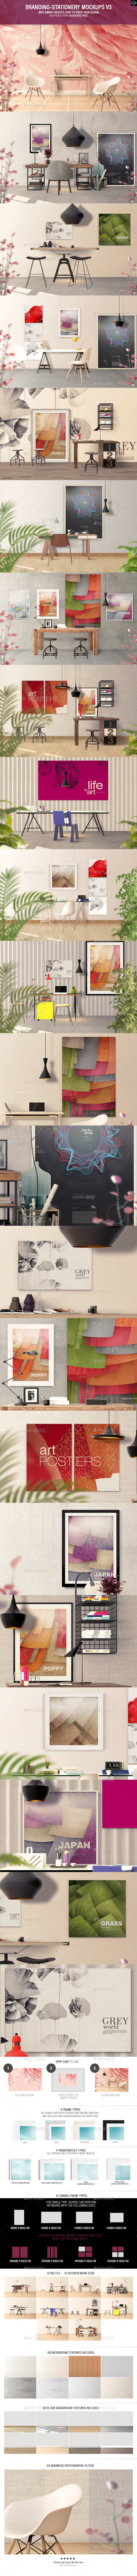 GraphicRiver Art Wall Mockups Interior Work Desk 10409605